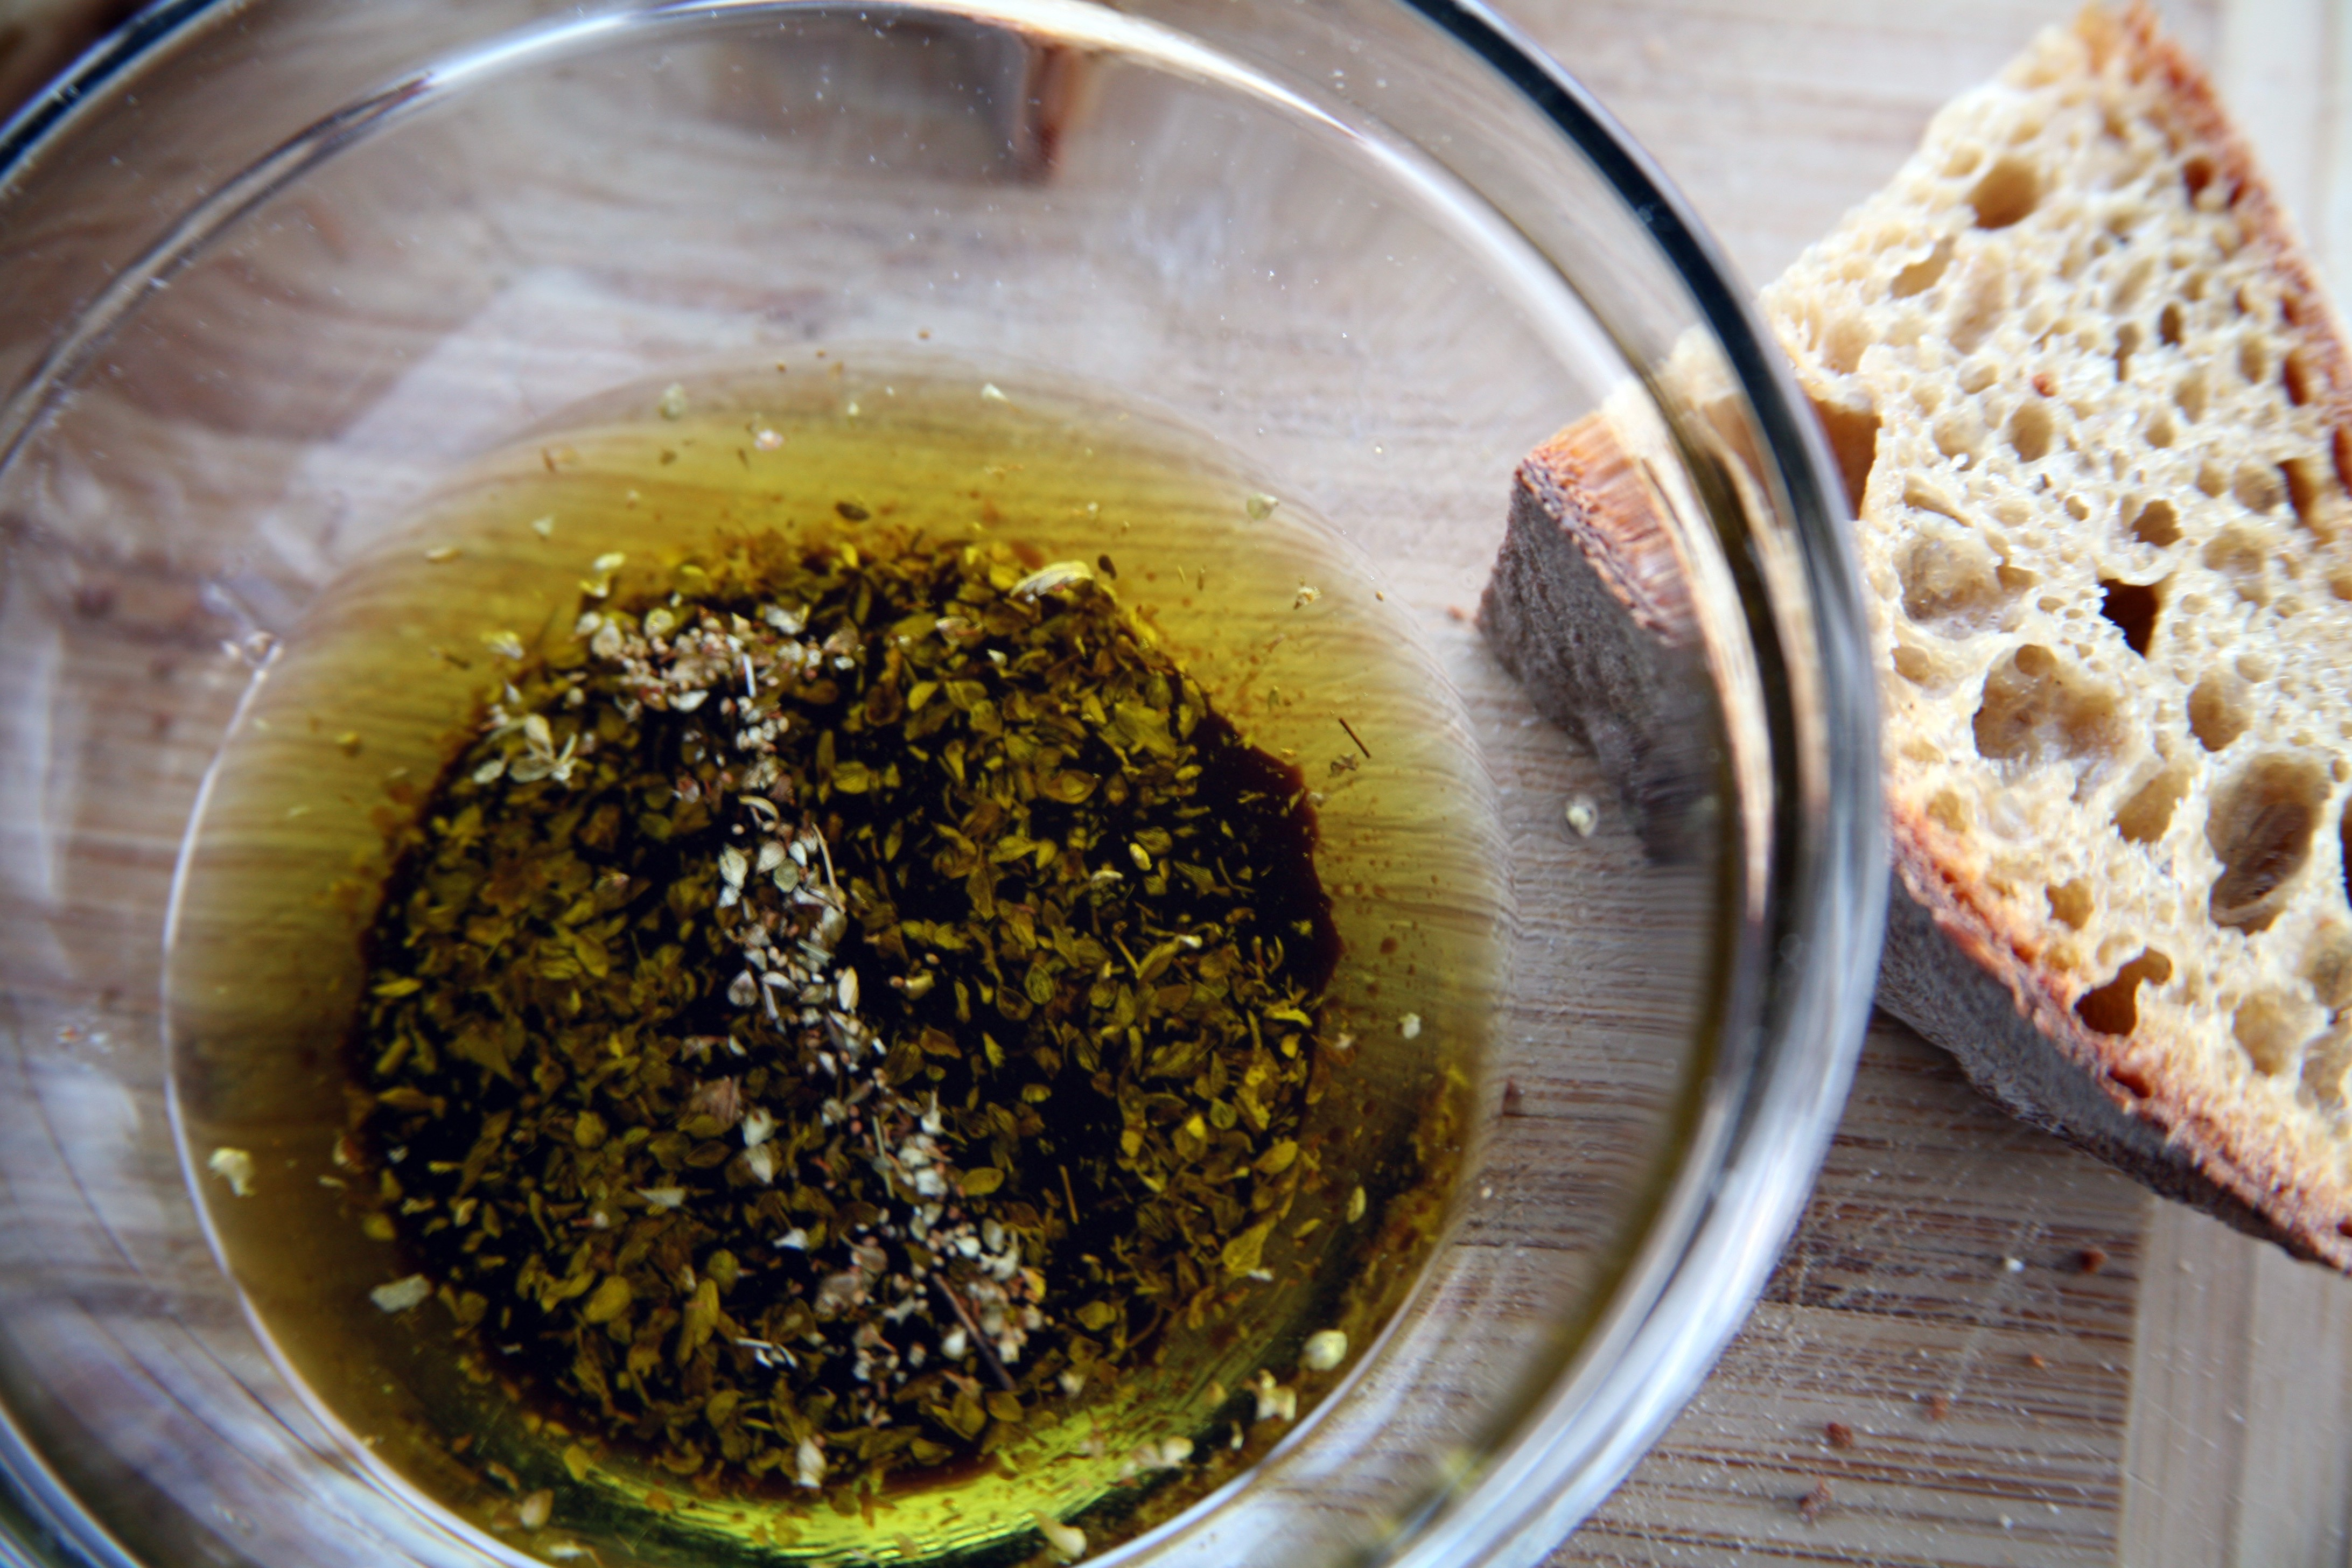 Basic Olive Oil Dipping Sauce